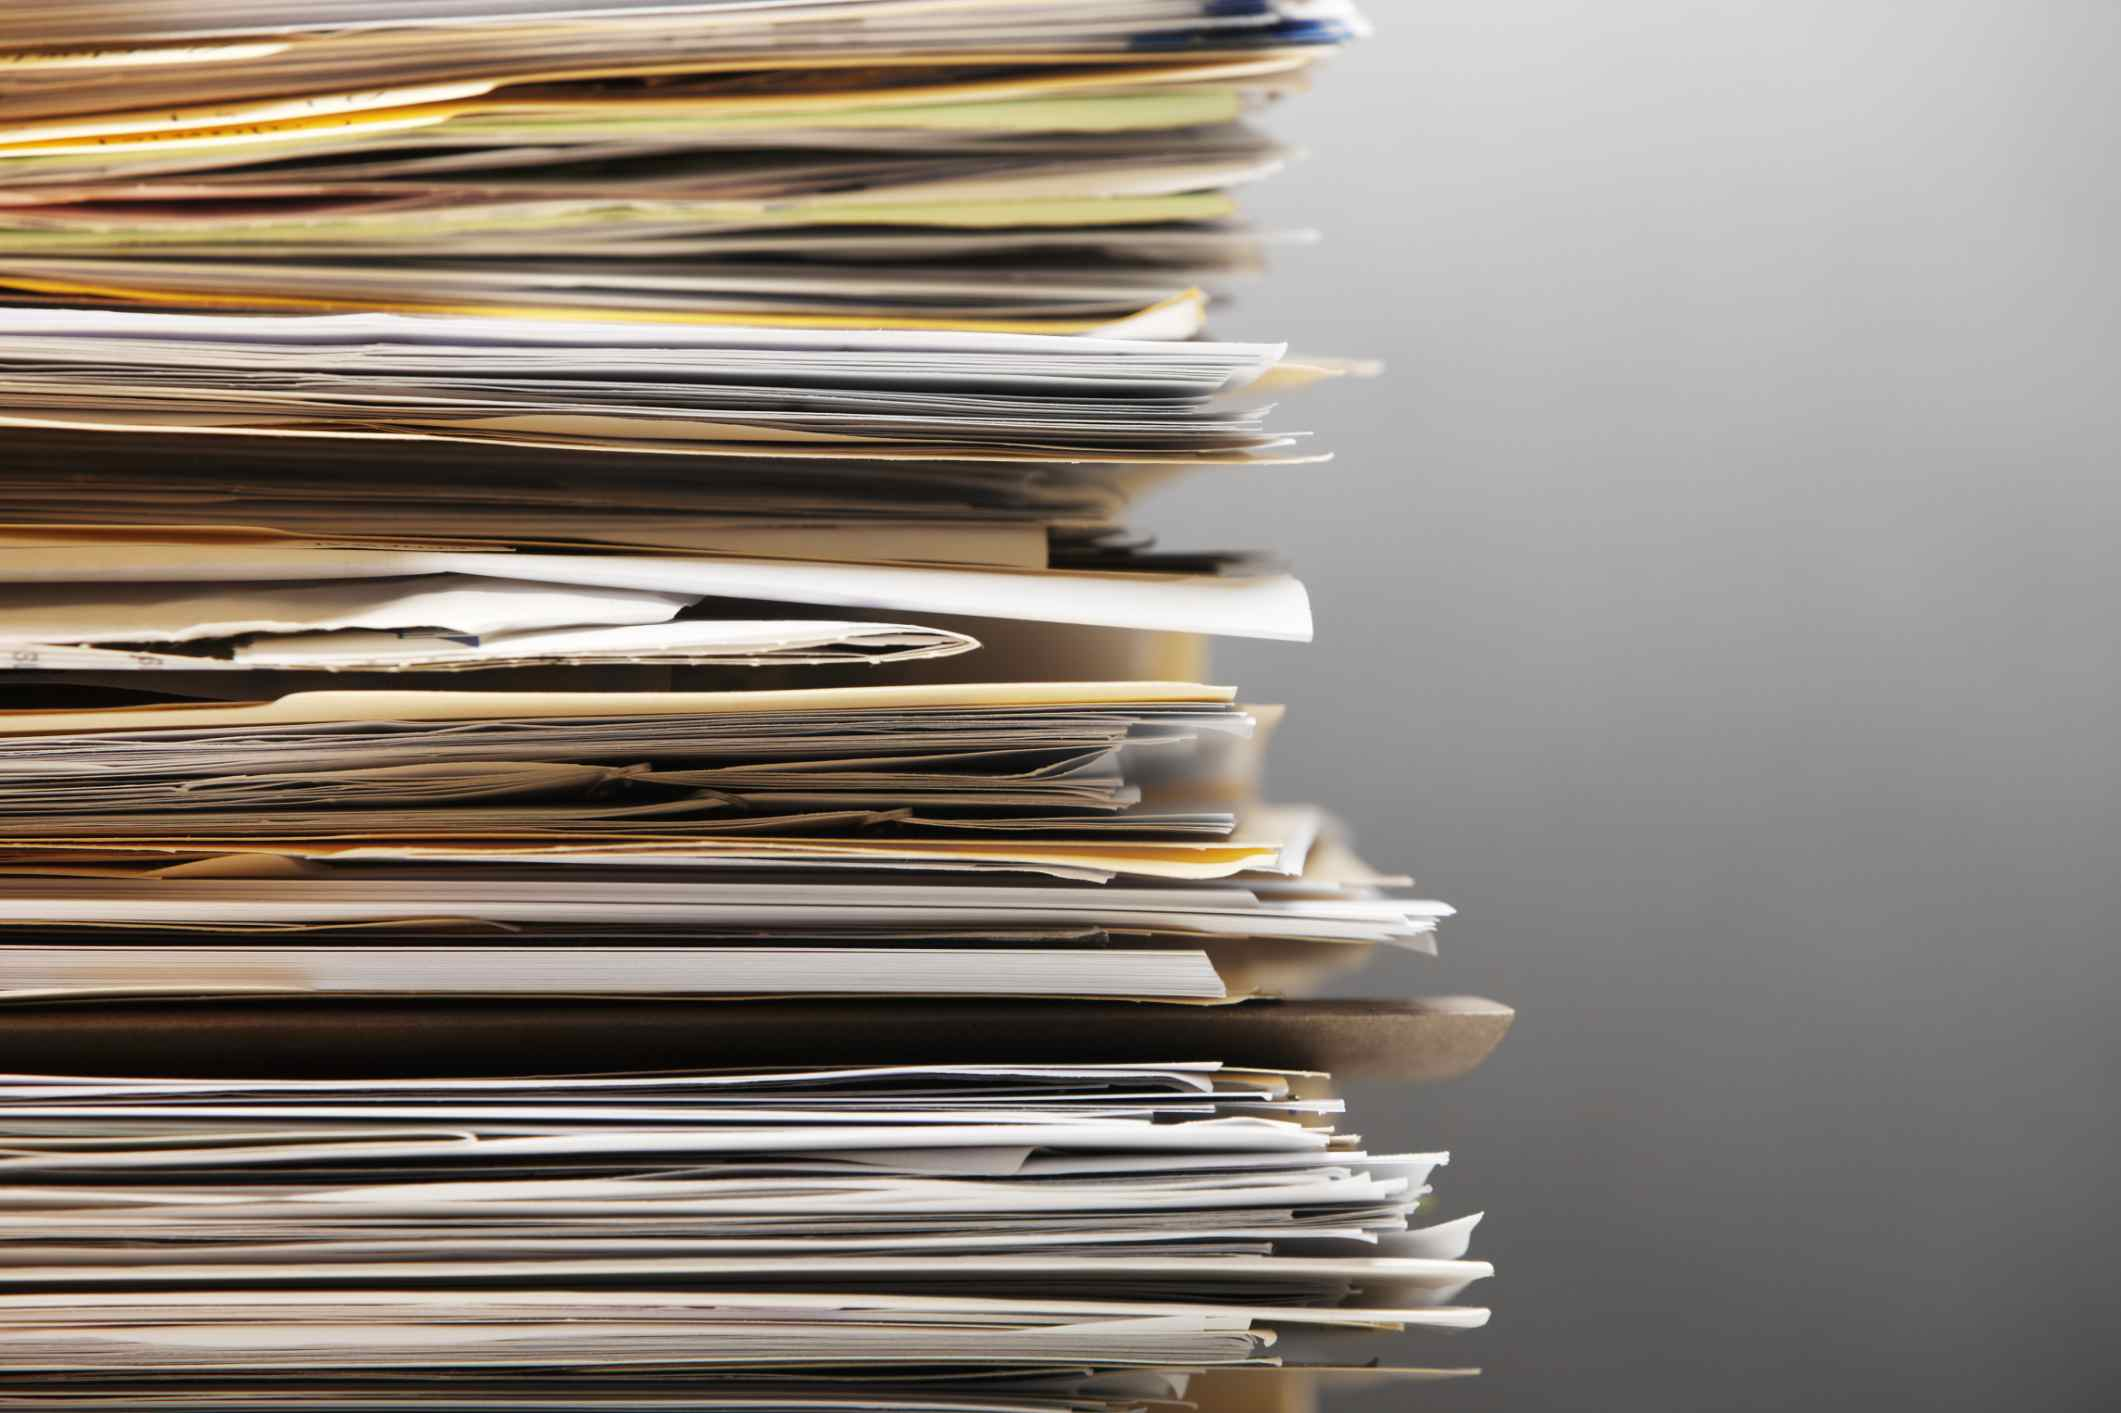 Photo of a stack of files and paper